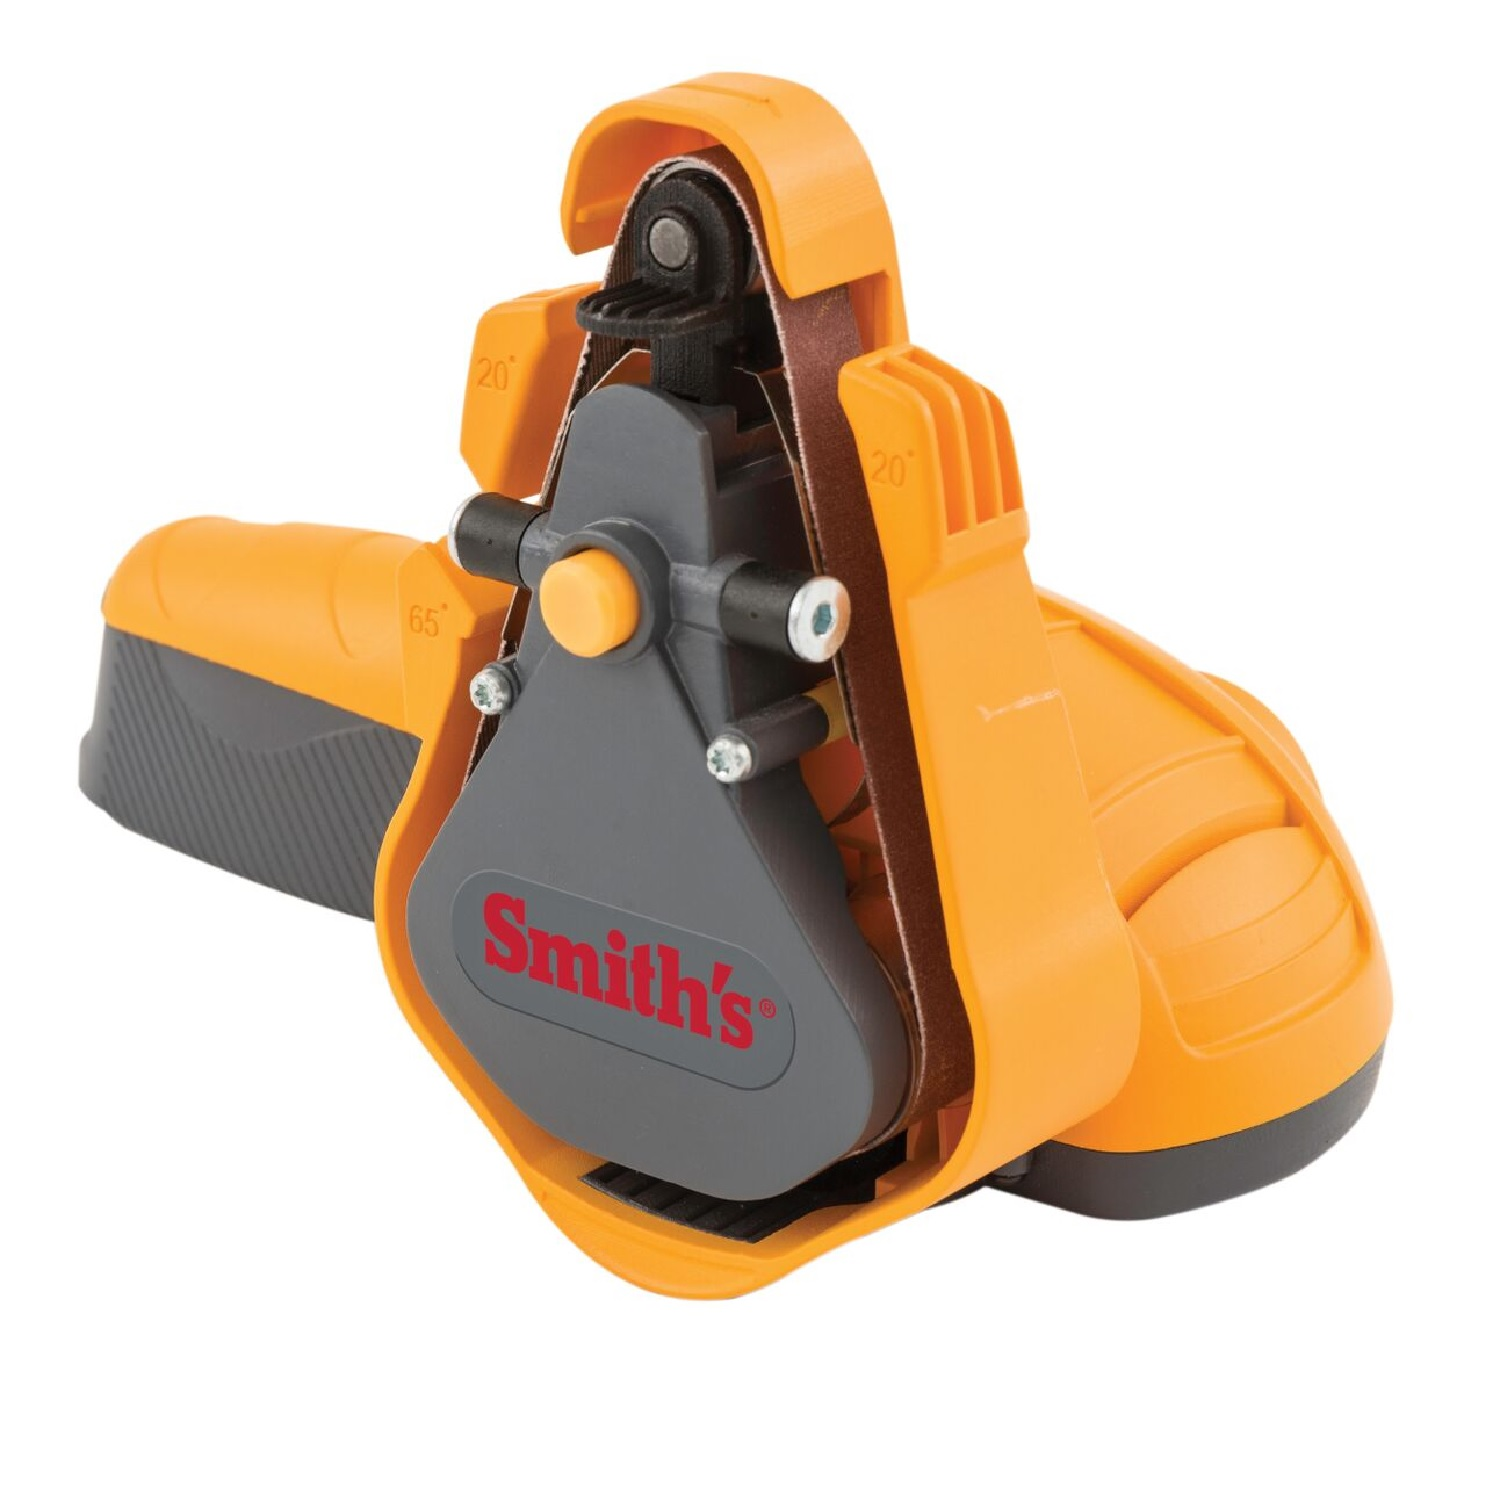 Smith Knife & Scissor Sharpener Electric